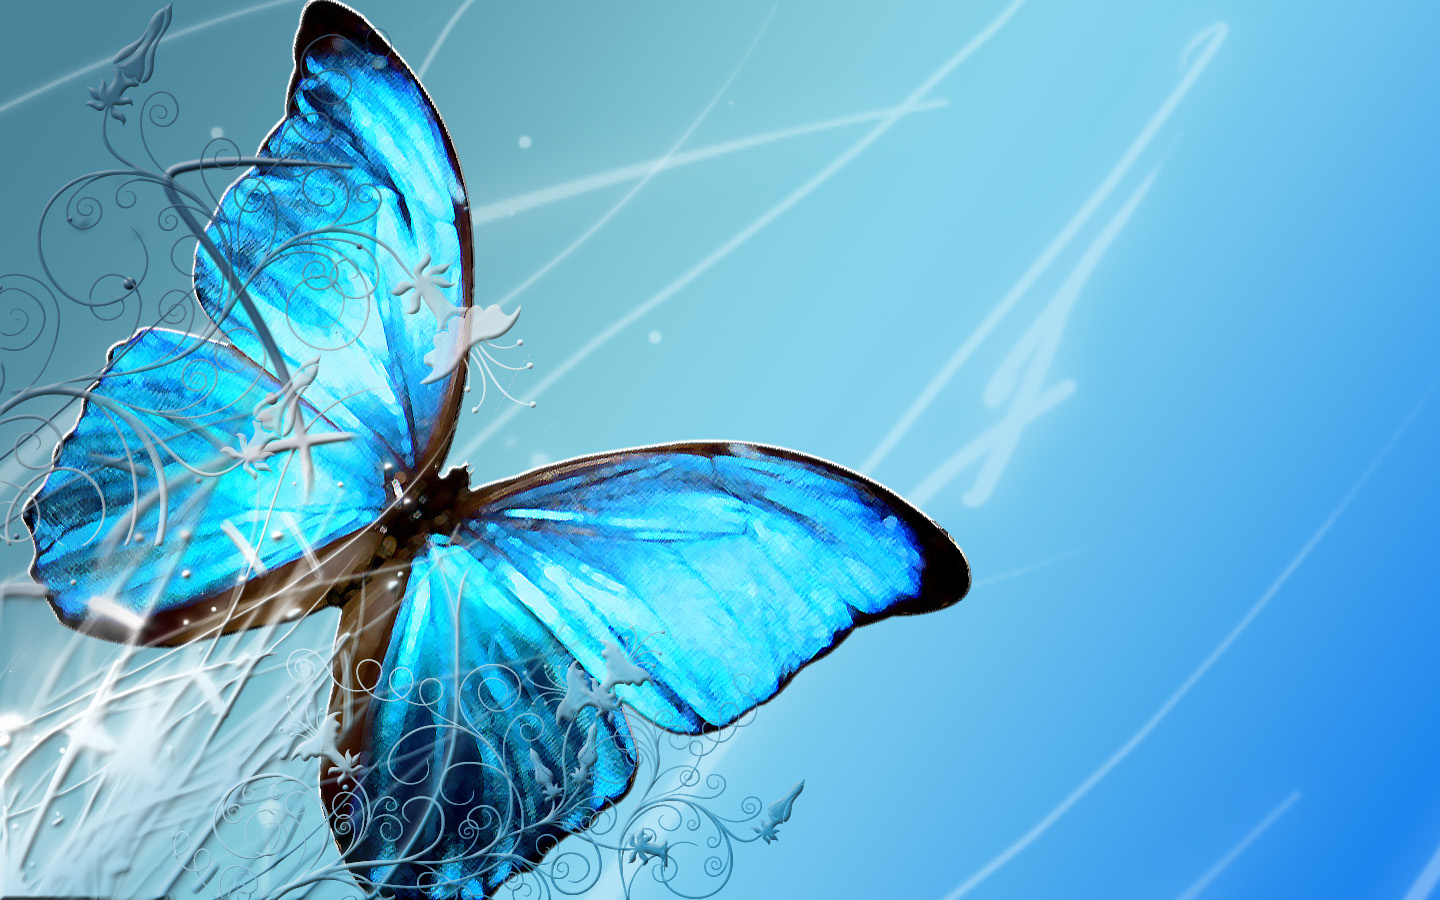 Butterfly Wallpaper 3D Wallpaper Nature Wallpaper 1440x900